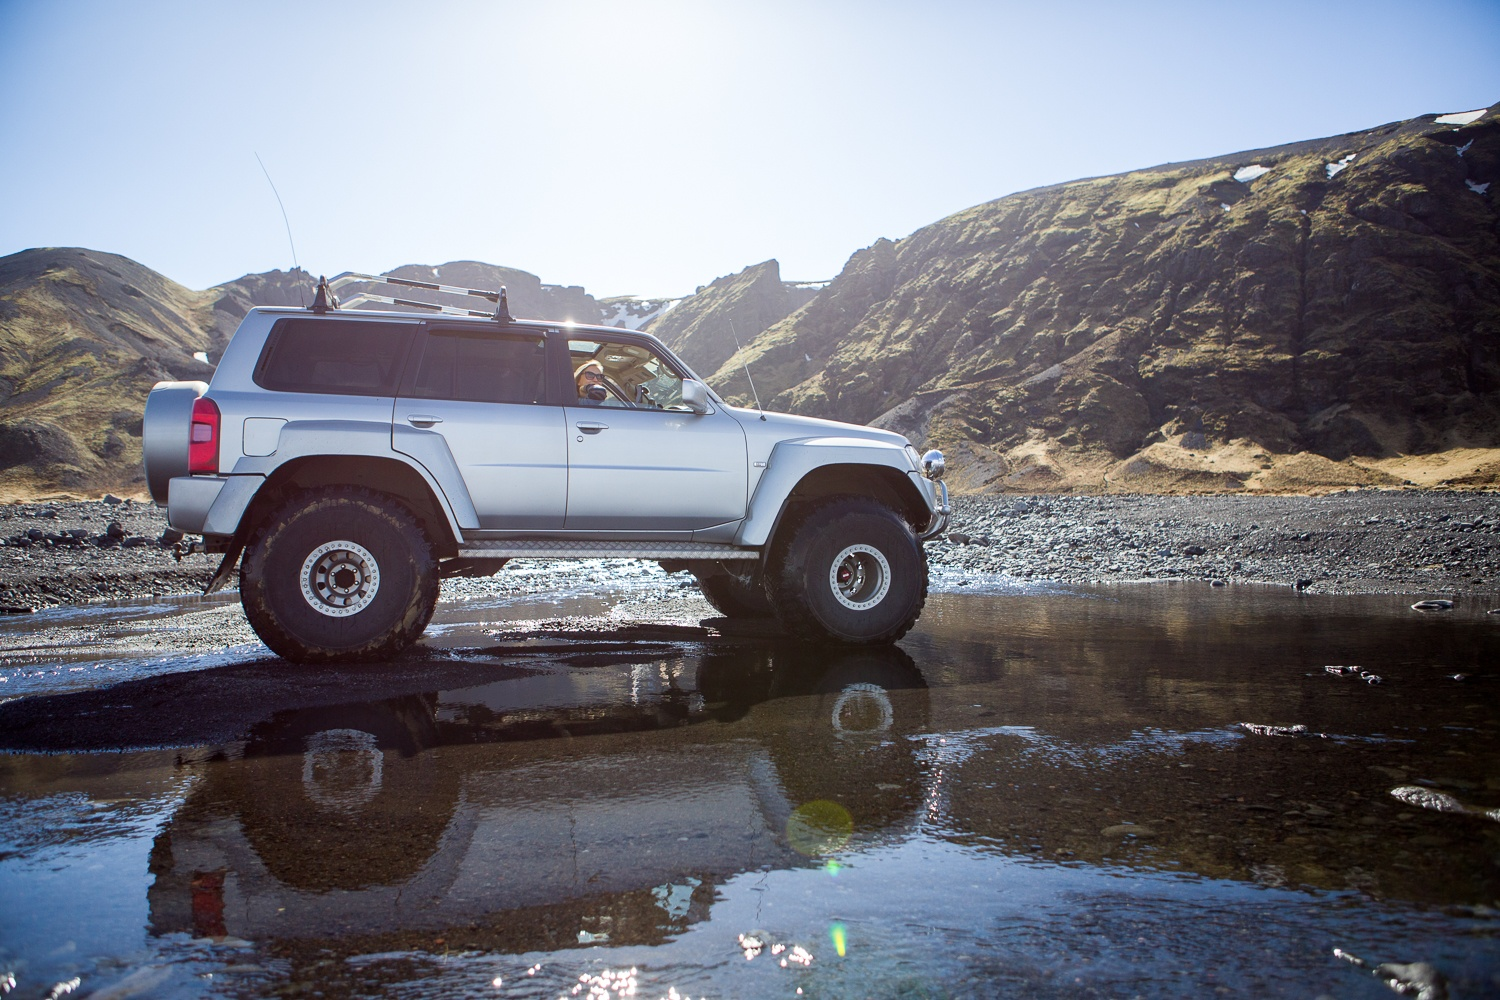 Nissan Patrol Super Jeep Private Tour Discover Iceland Iceland Private Tours 4x4 Super Jeep Trips